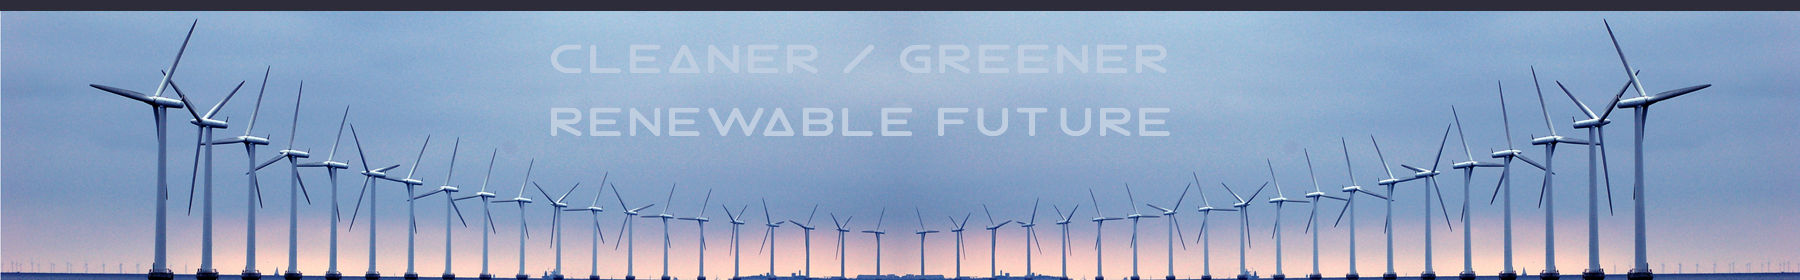 Renewable Future